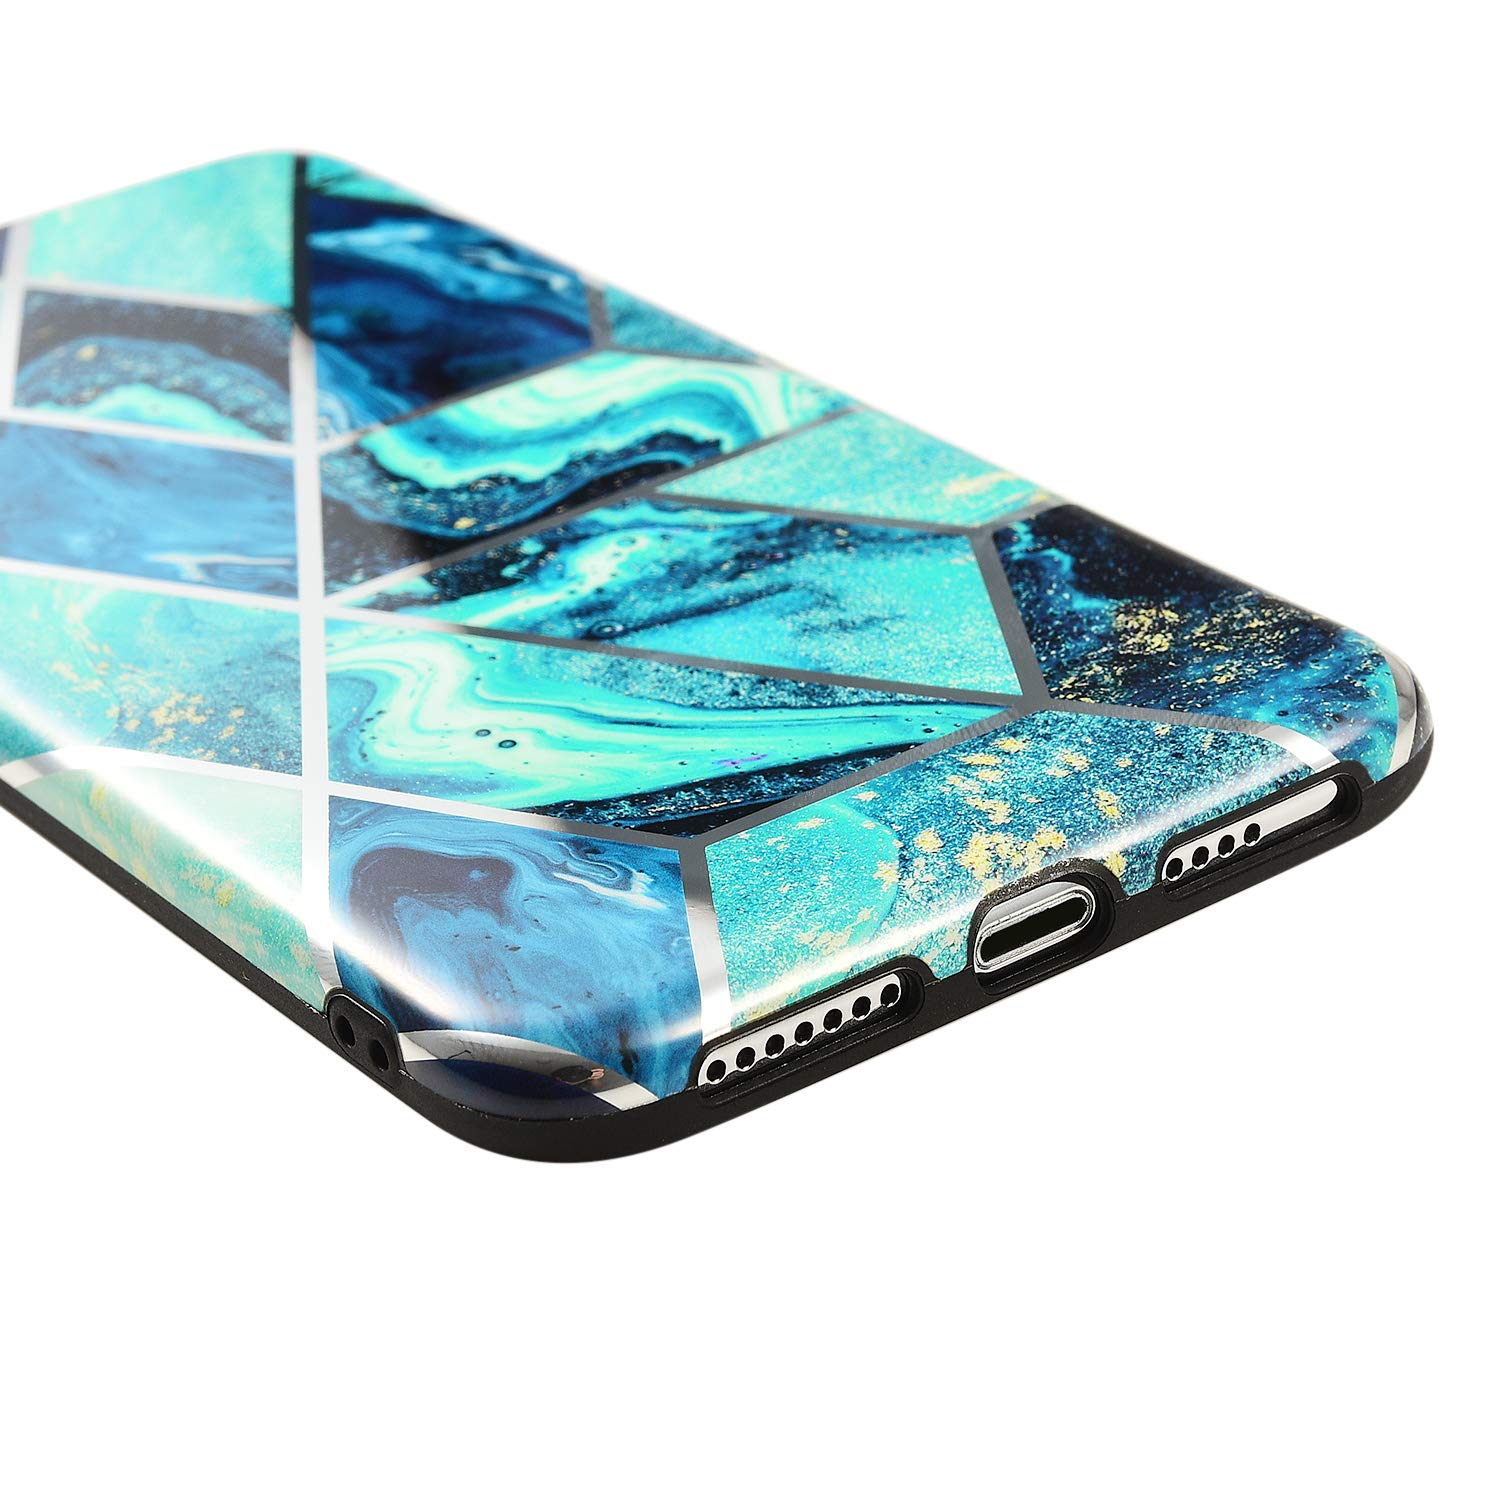 iPhone XS Case Shockproof Tough Marble Soft Cover for Apple